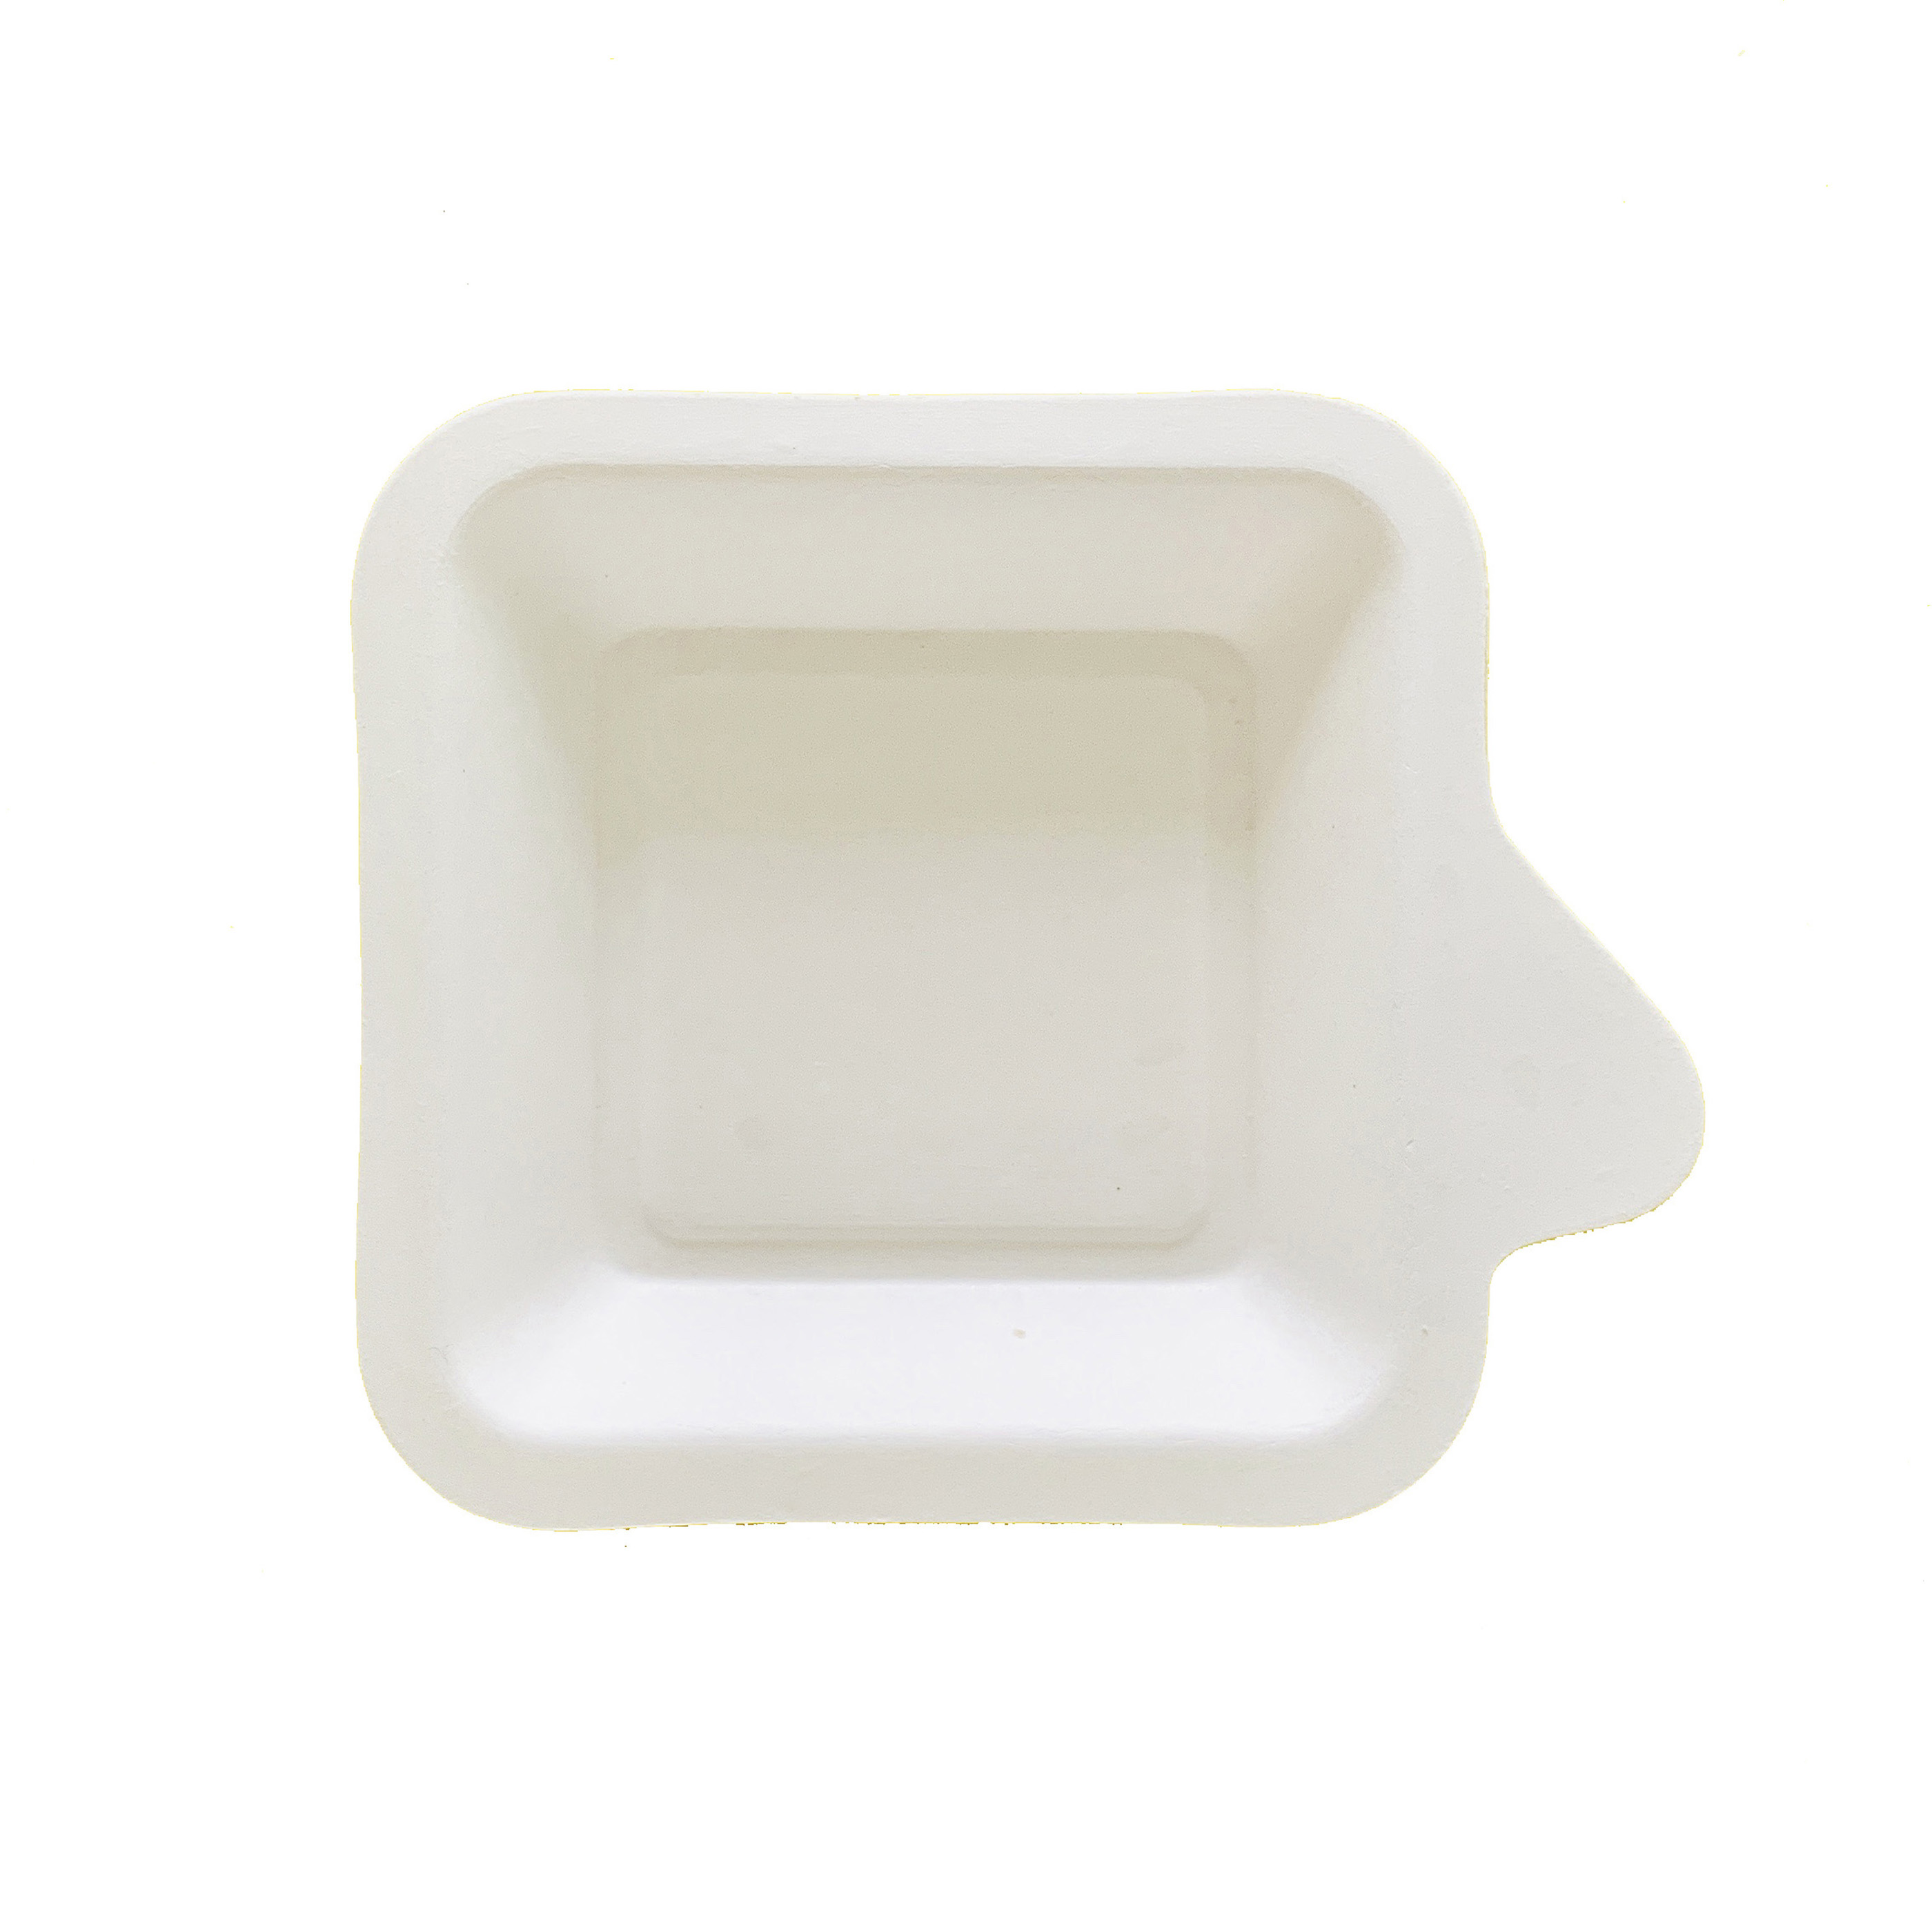 Greenweimo Custom meal tray company for hot food-1